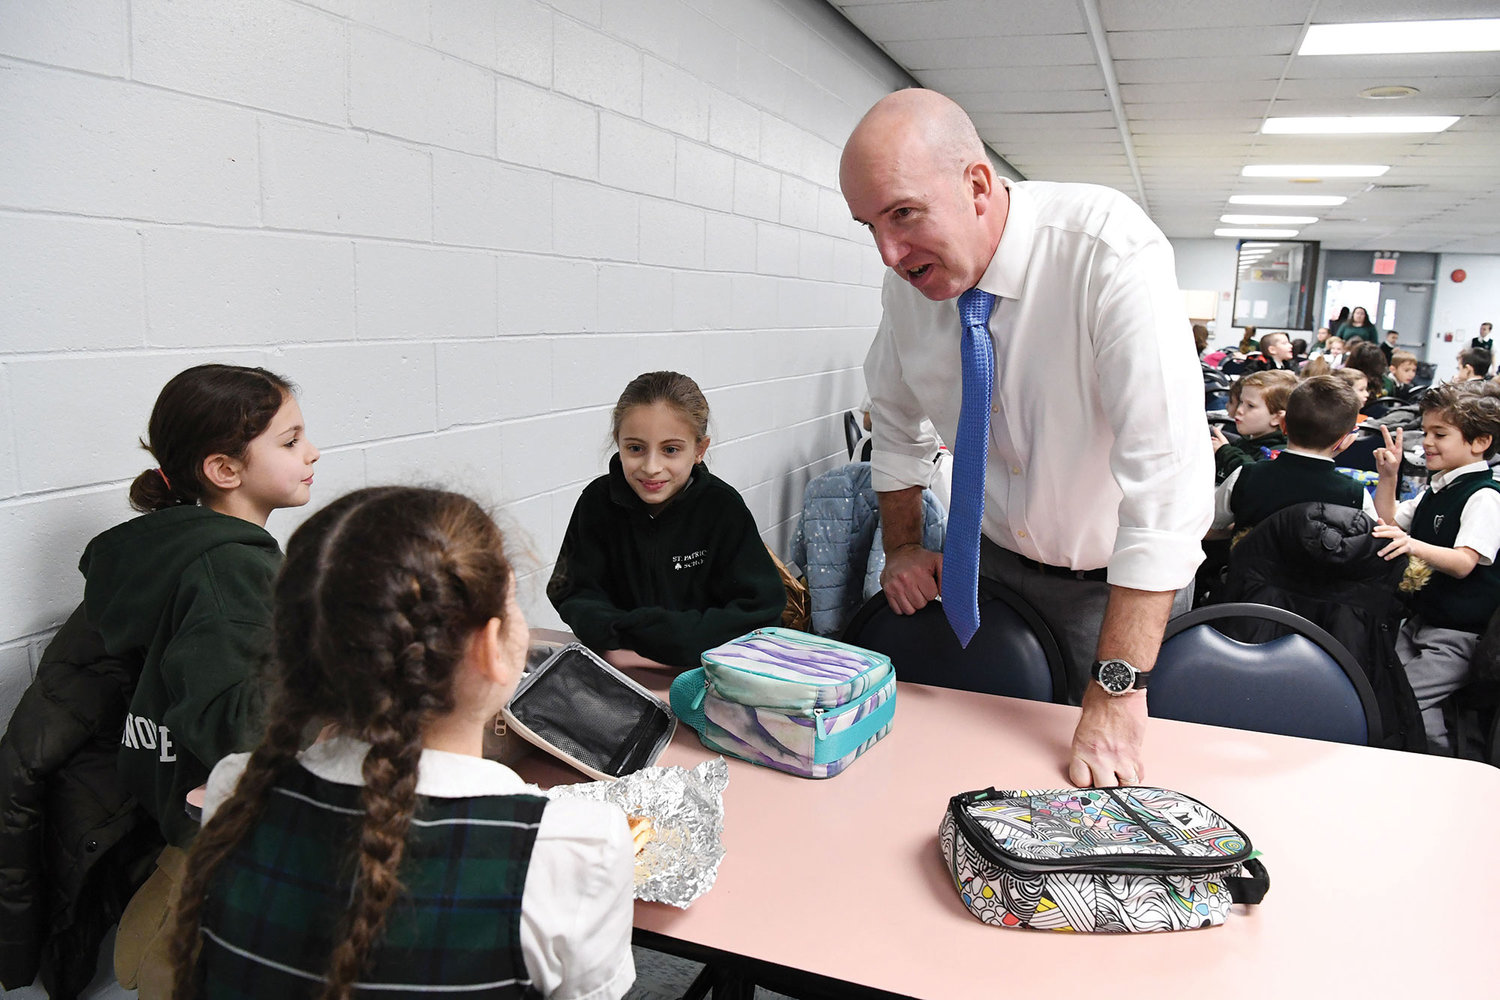 Sadowski talks with fourth-grade students in the cafeteria; the students are Misty Spano, with braids, Gabriella Borgognone and Alexis Testaverde.